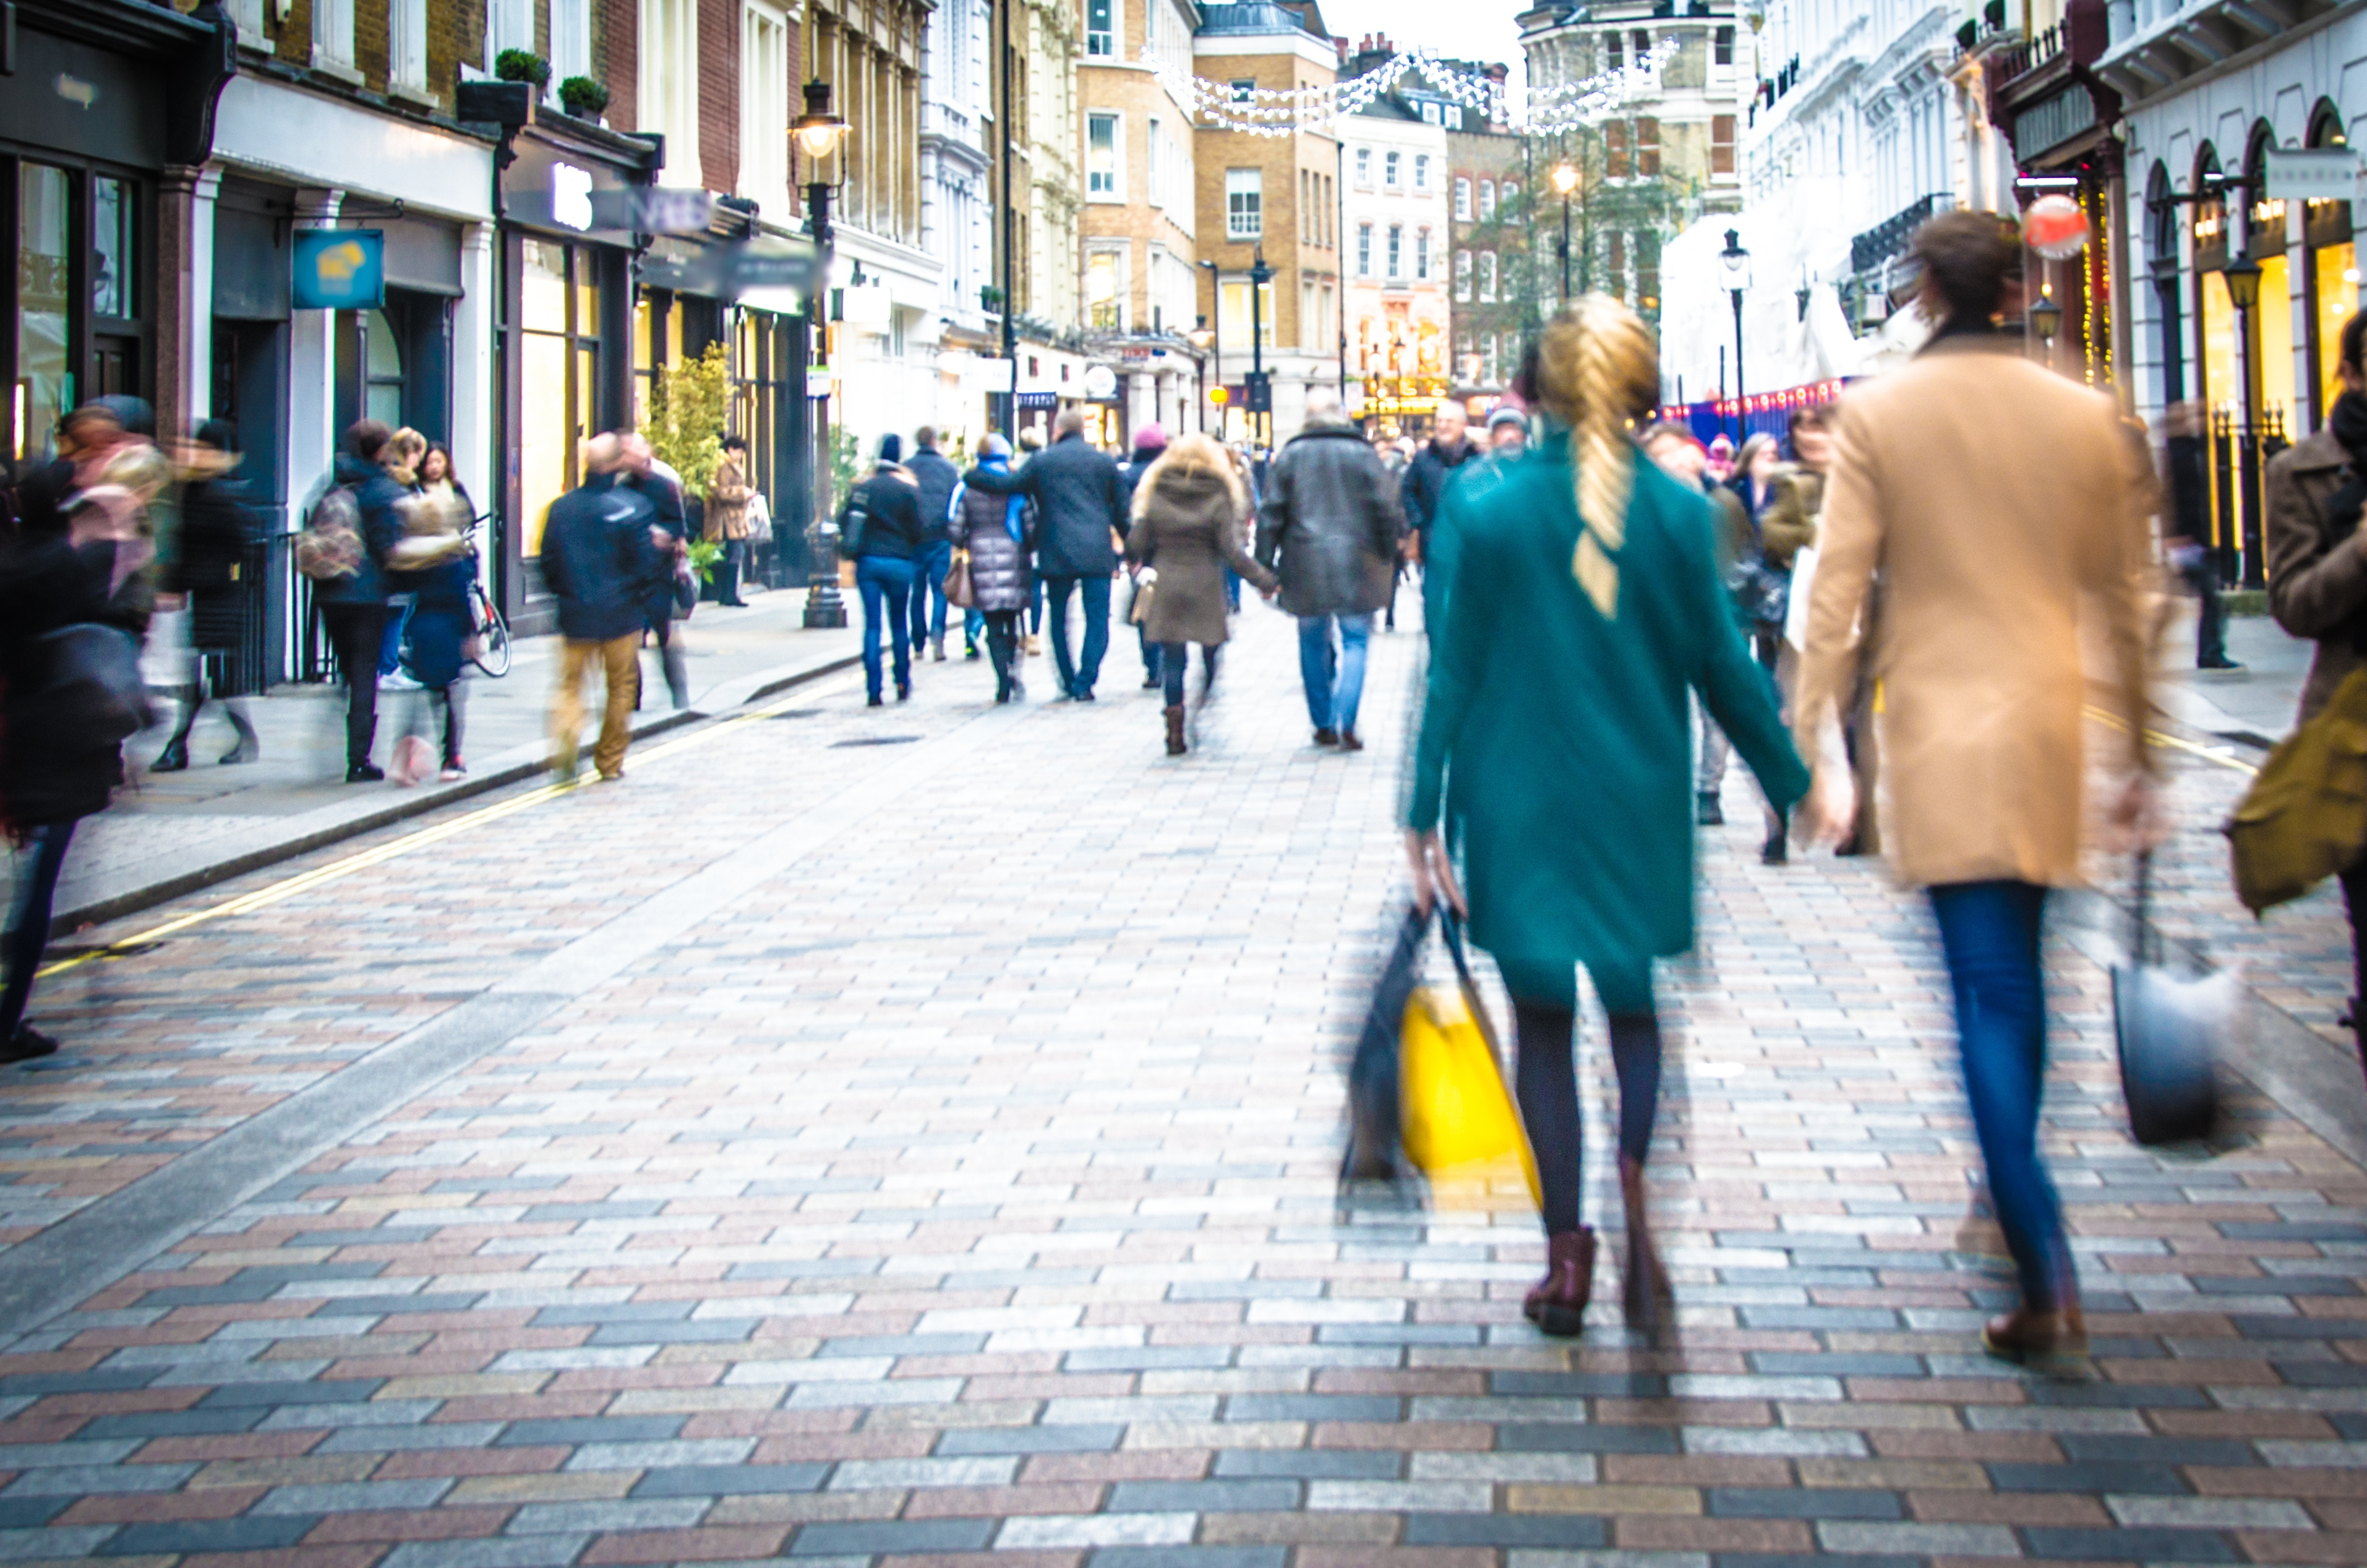 Mainstream Retailers Still Pack a Strong Social Punch